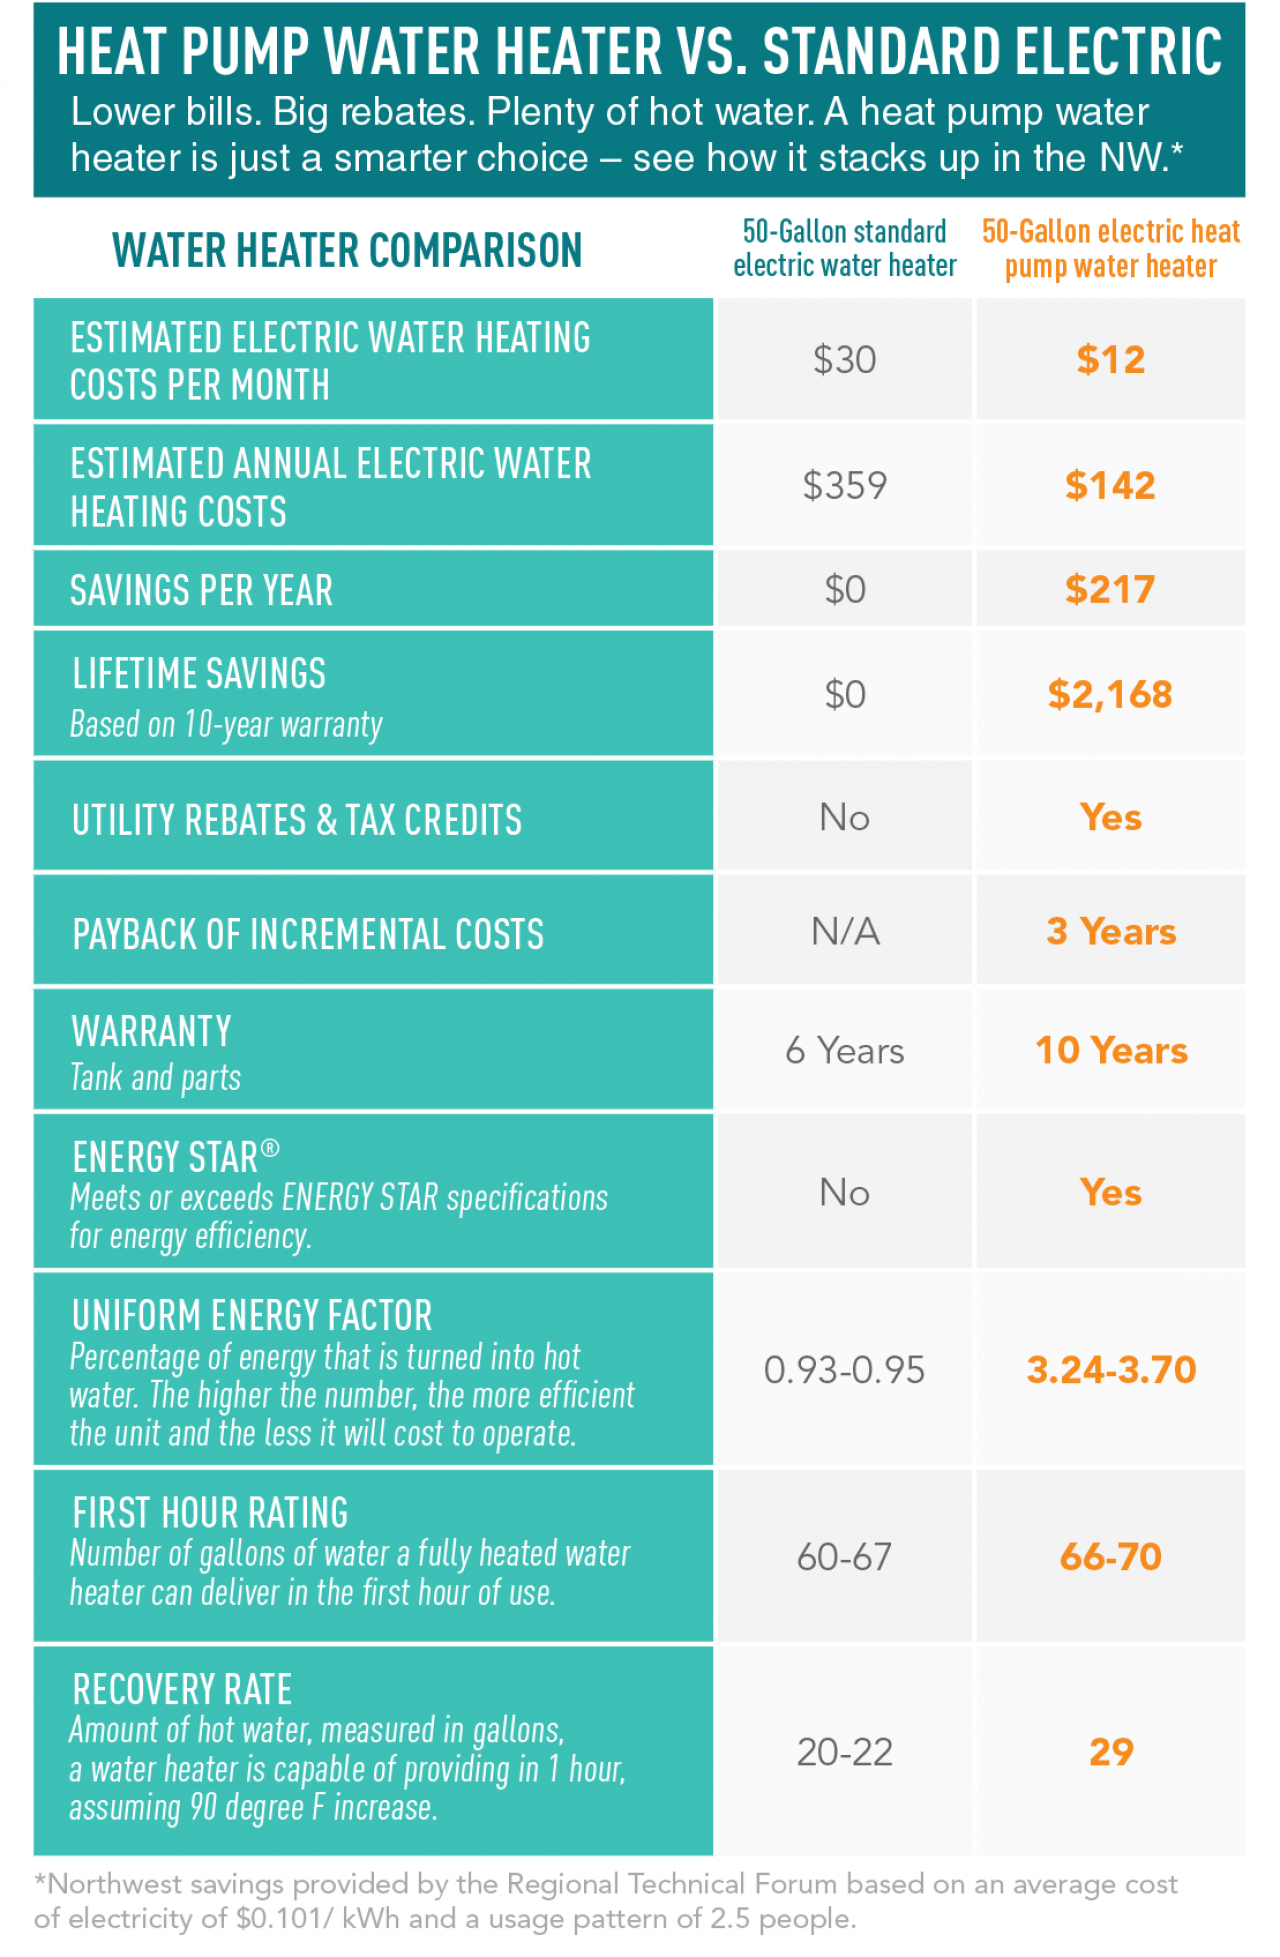 Heat Pump Vs. Standard Electric Water Heater Infographic